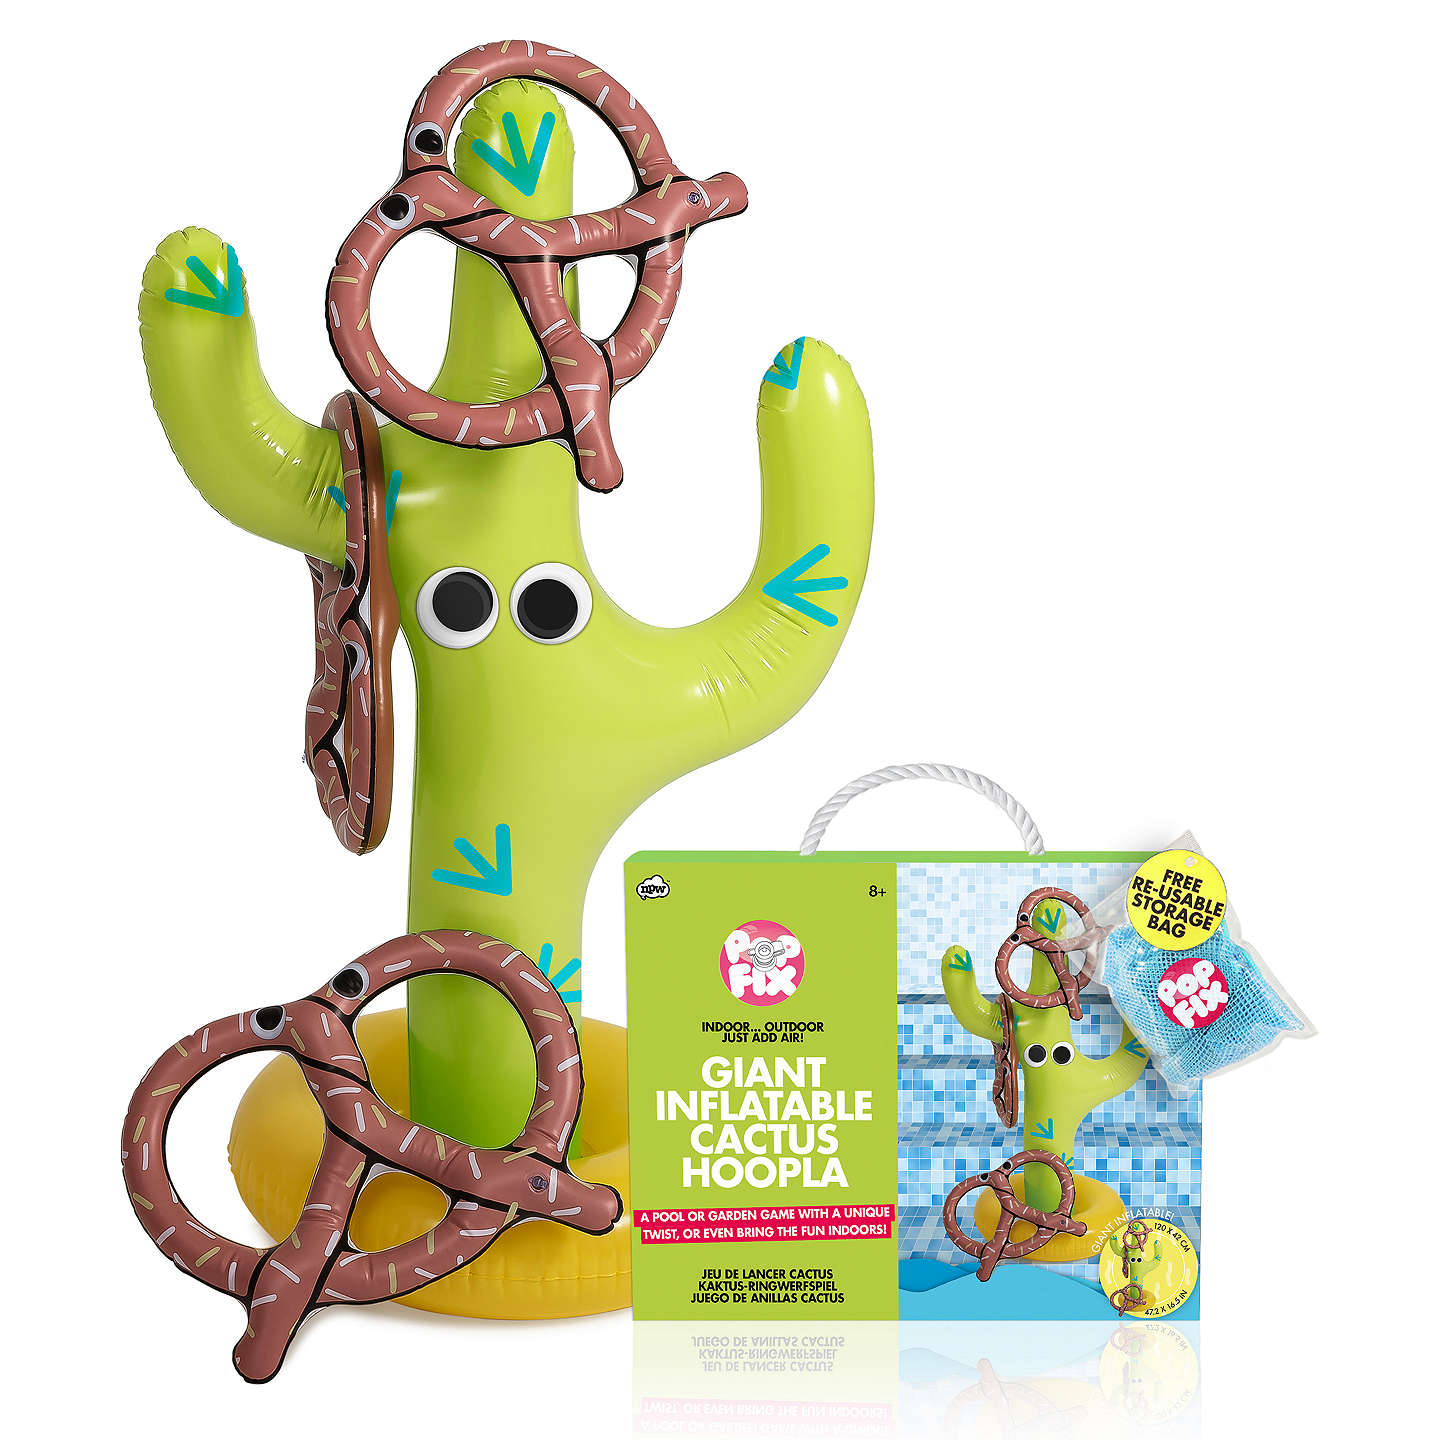 BuyNPW Inflatable Cactus Pretzel Hoopla Online at johnlewis.com